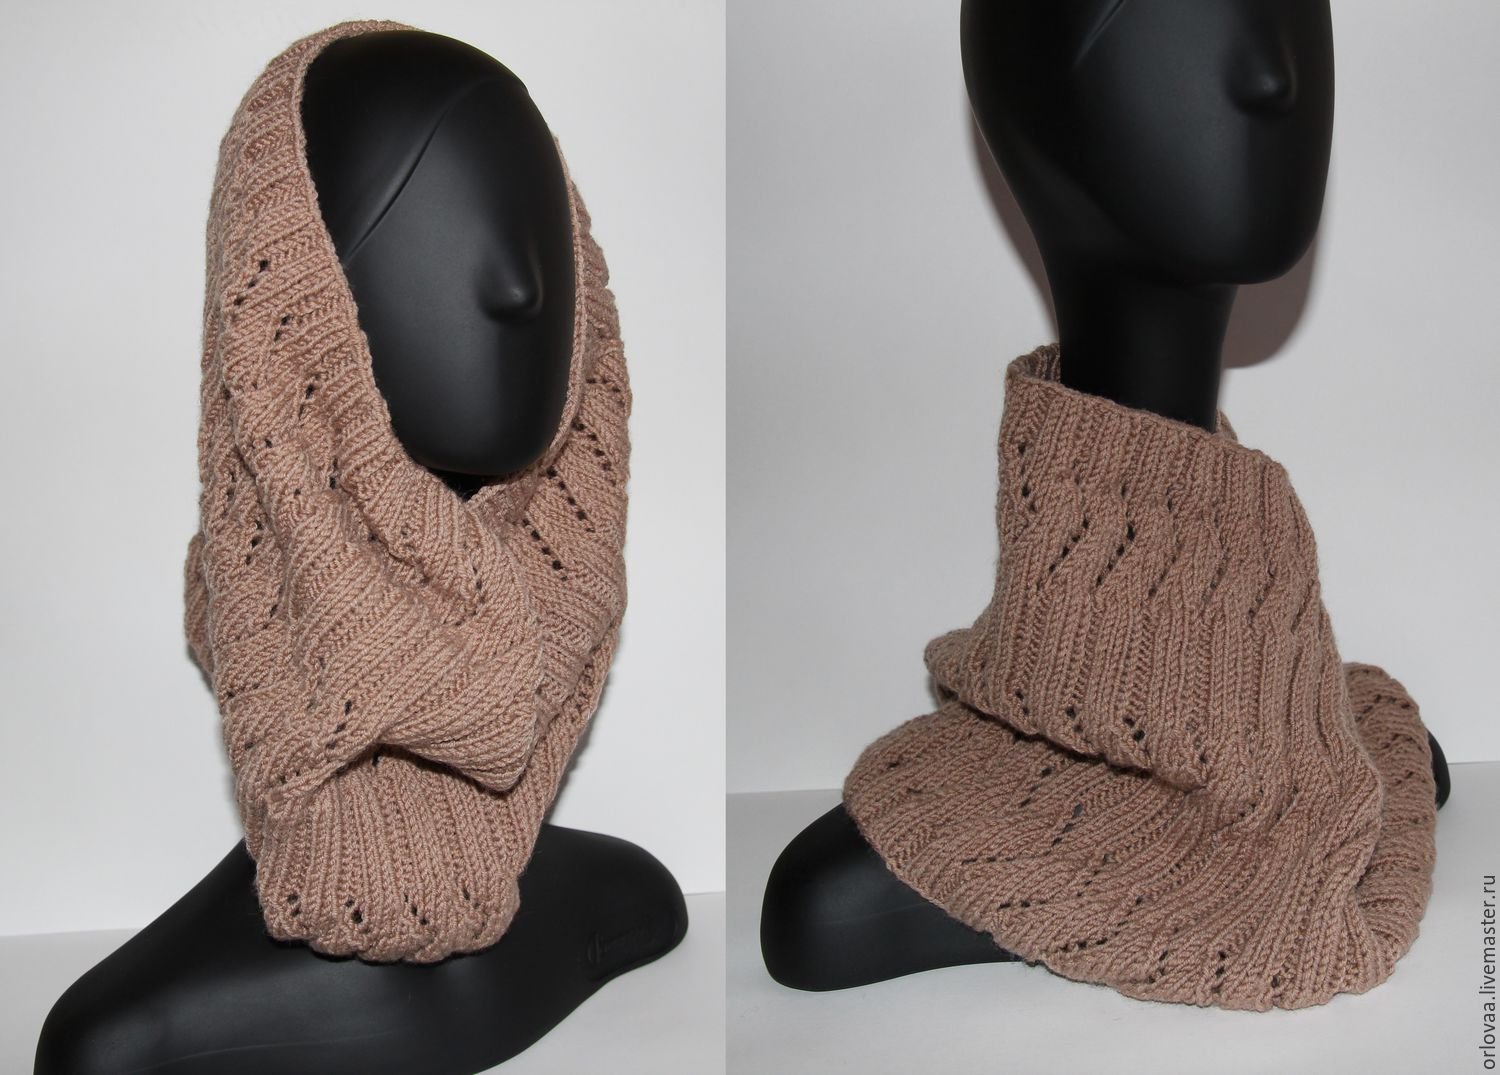 Knitted Snood with openwork pattern 'coffee with milk', Scarves, Moscow,  Фото №1